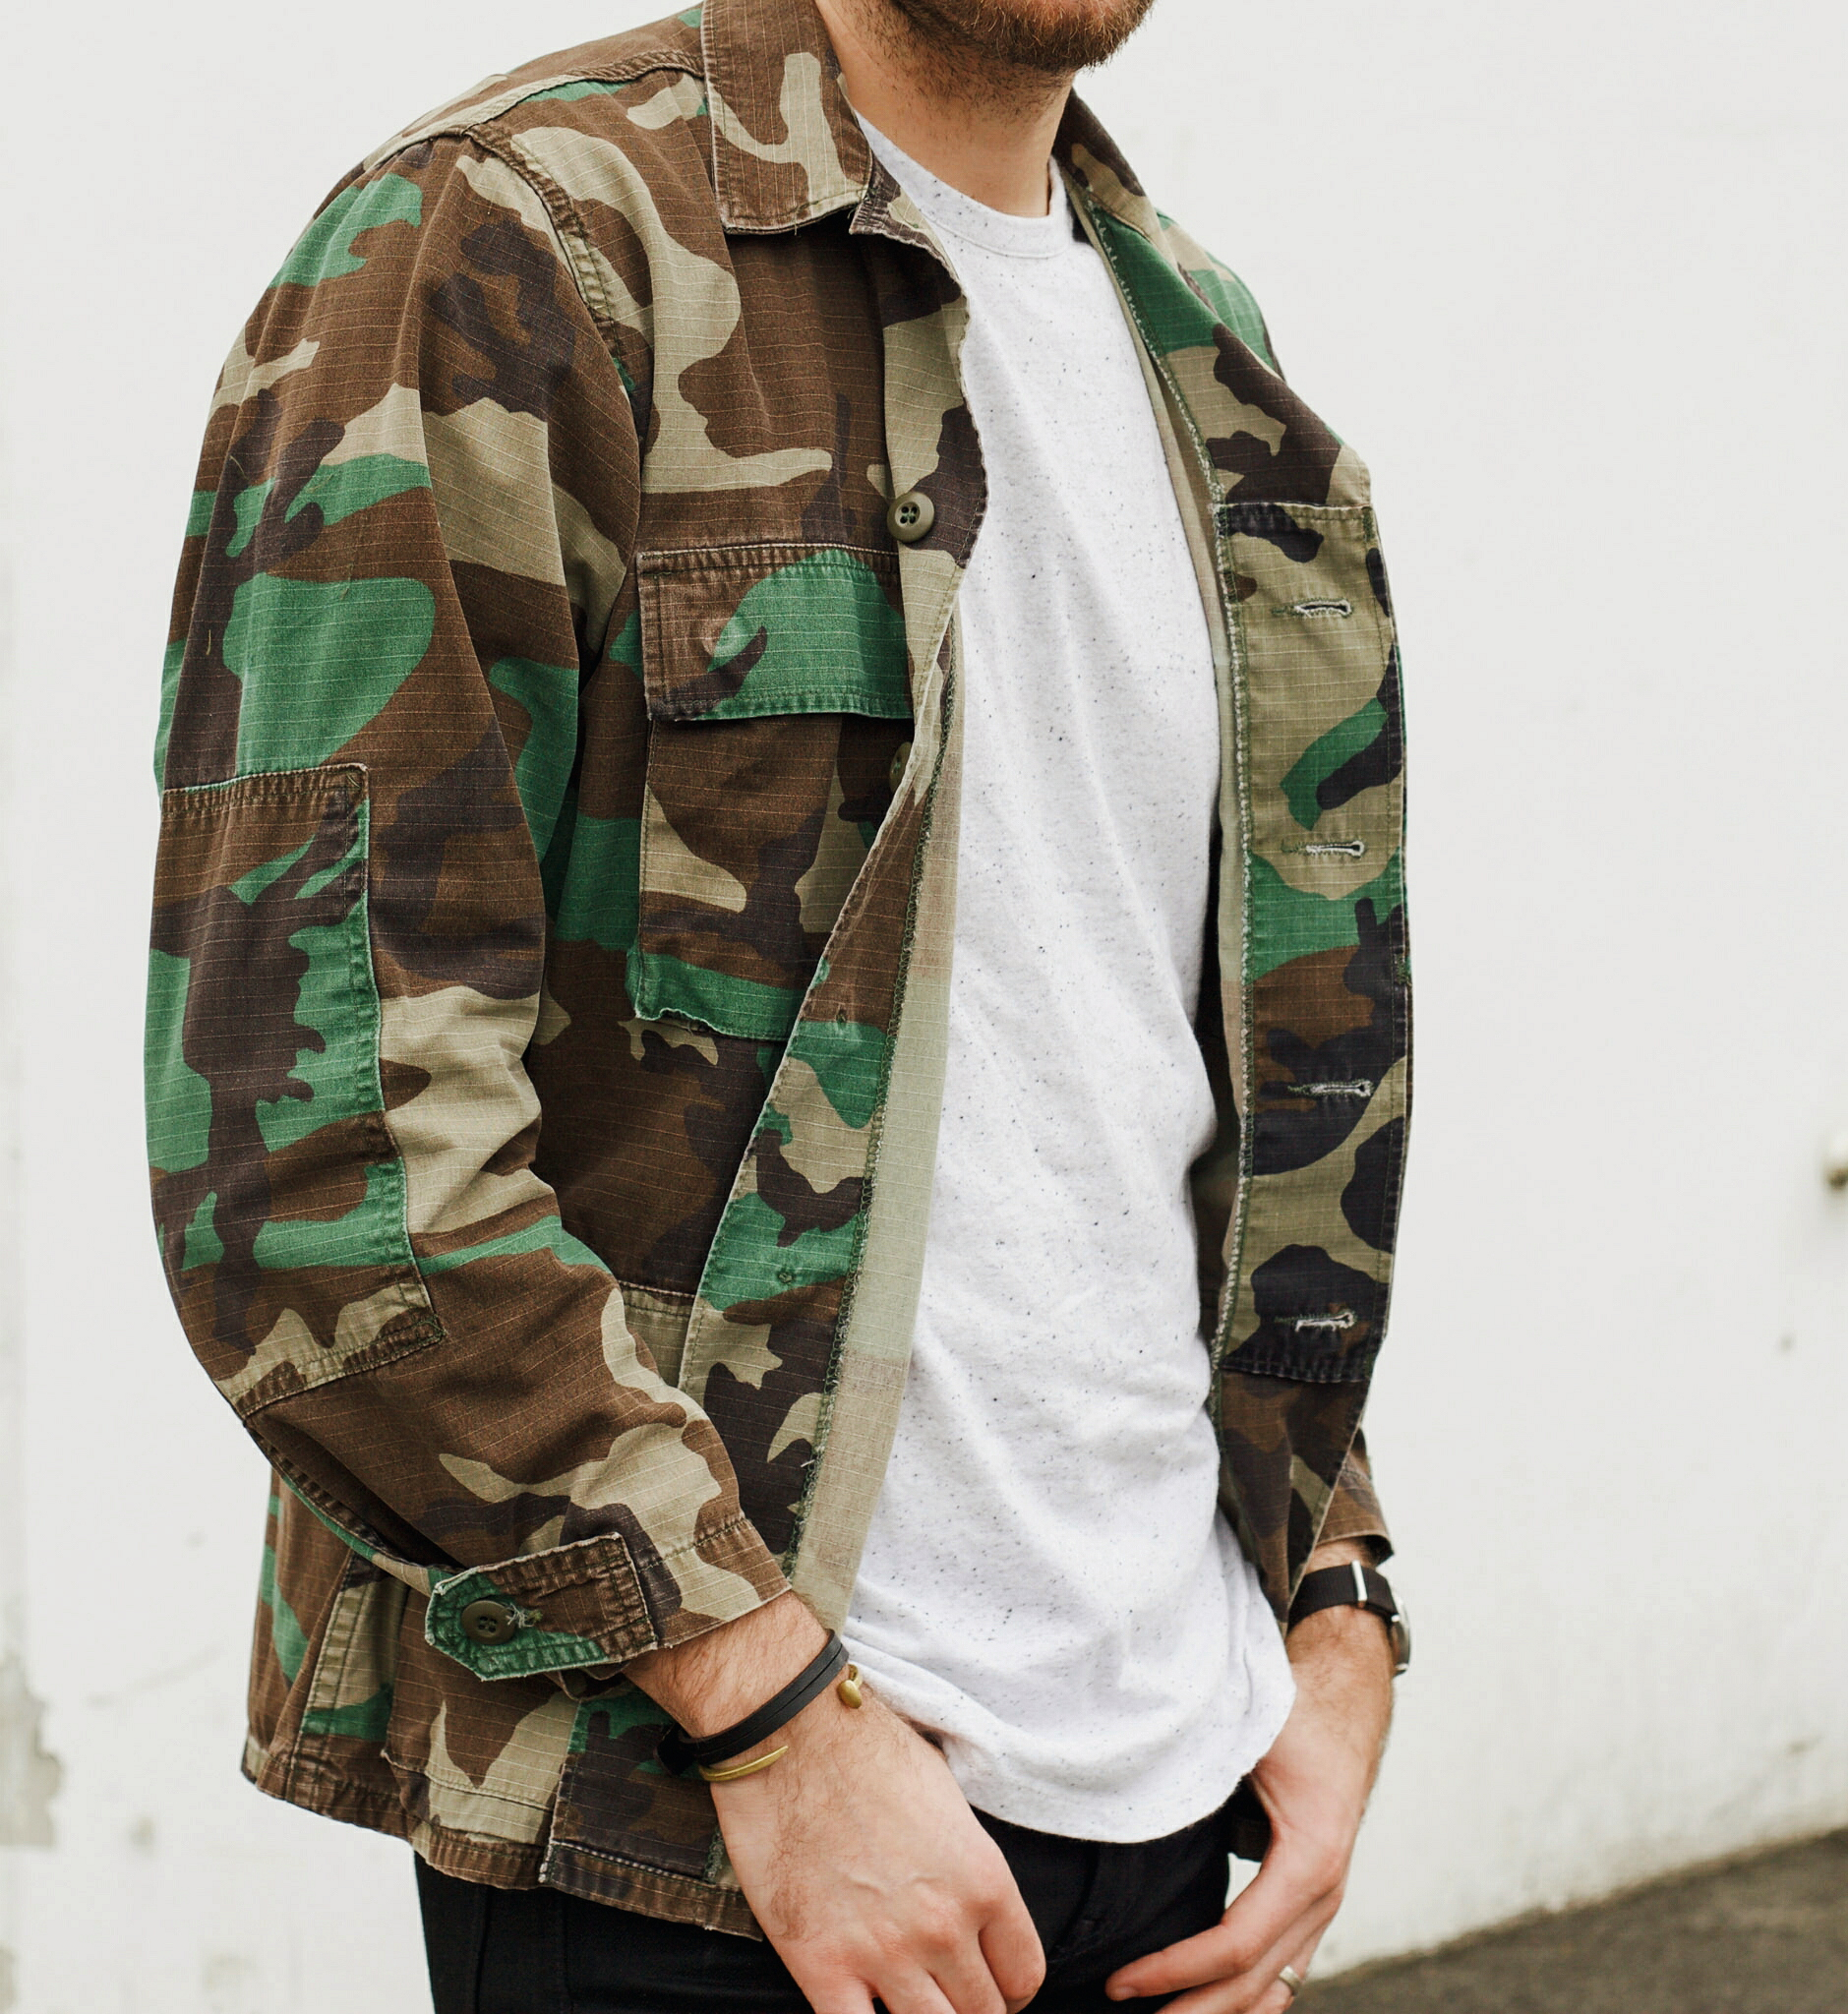 Vintage Camo Jacket and Sneakers 13